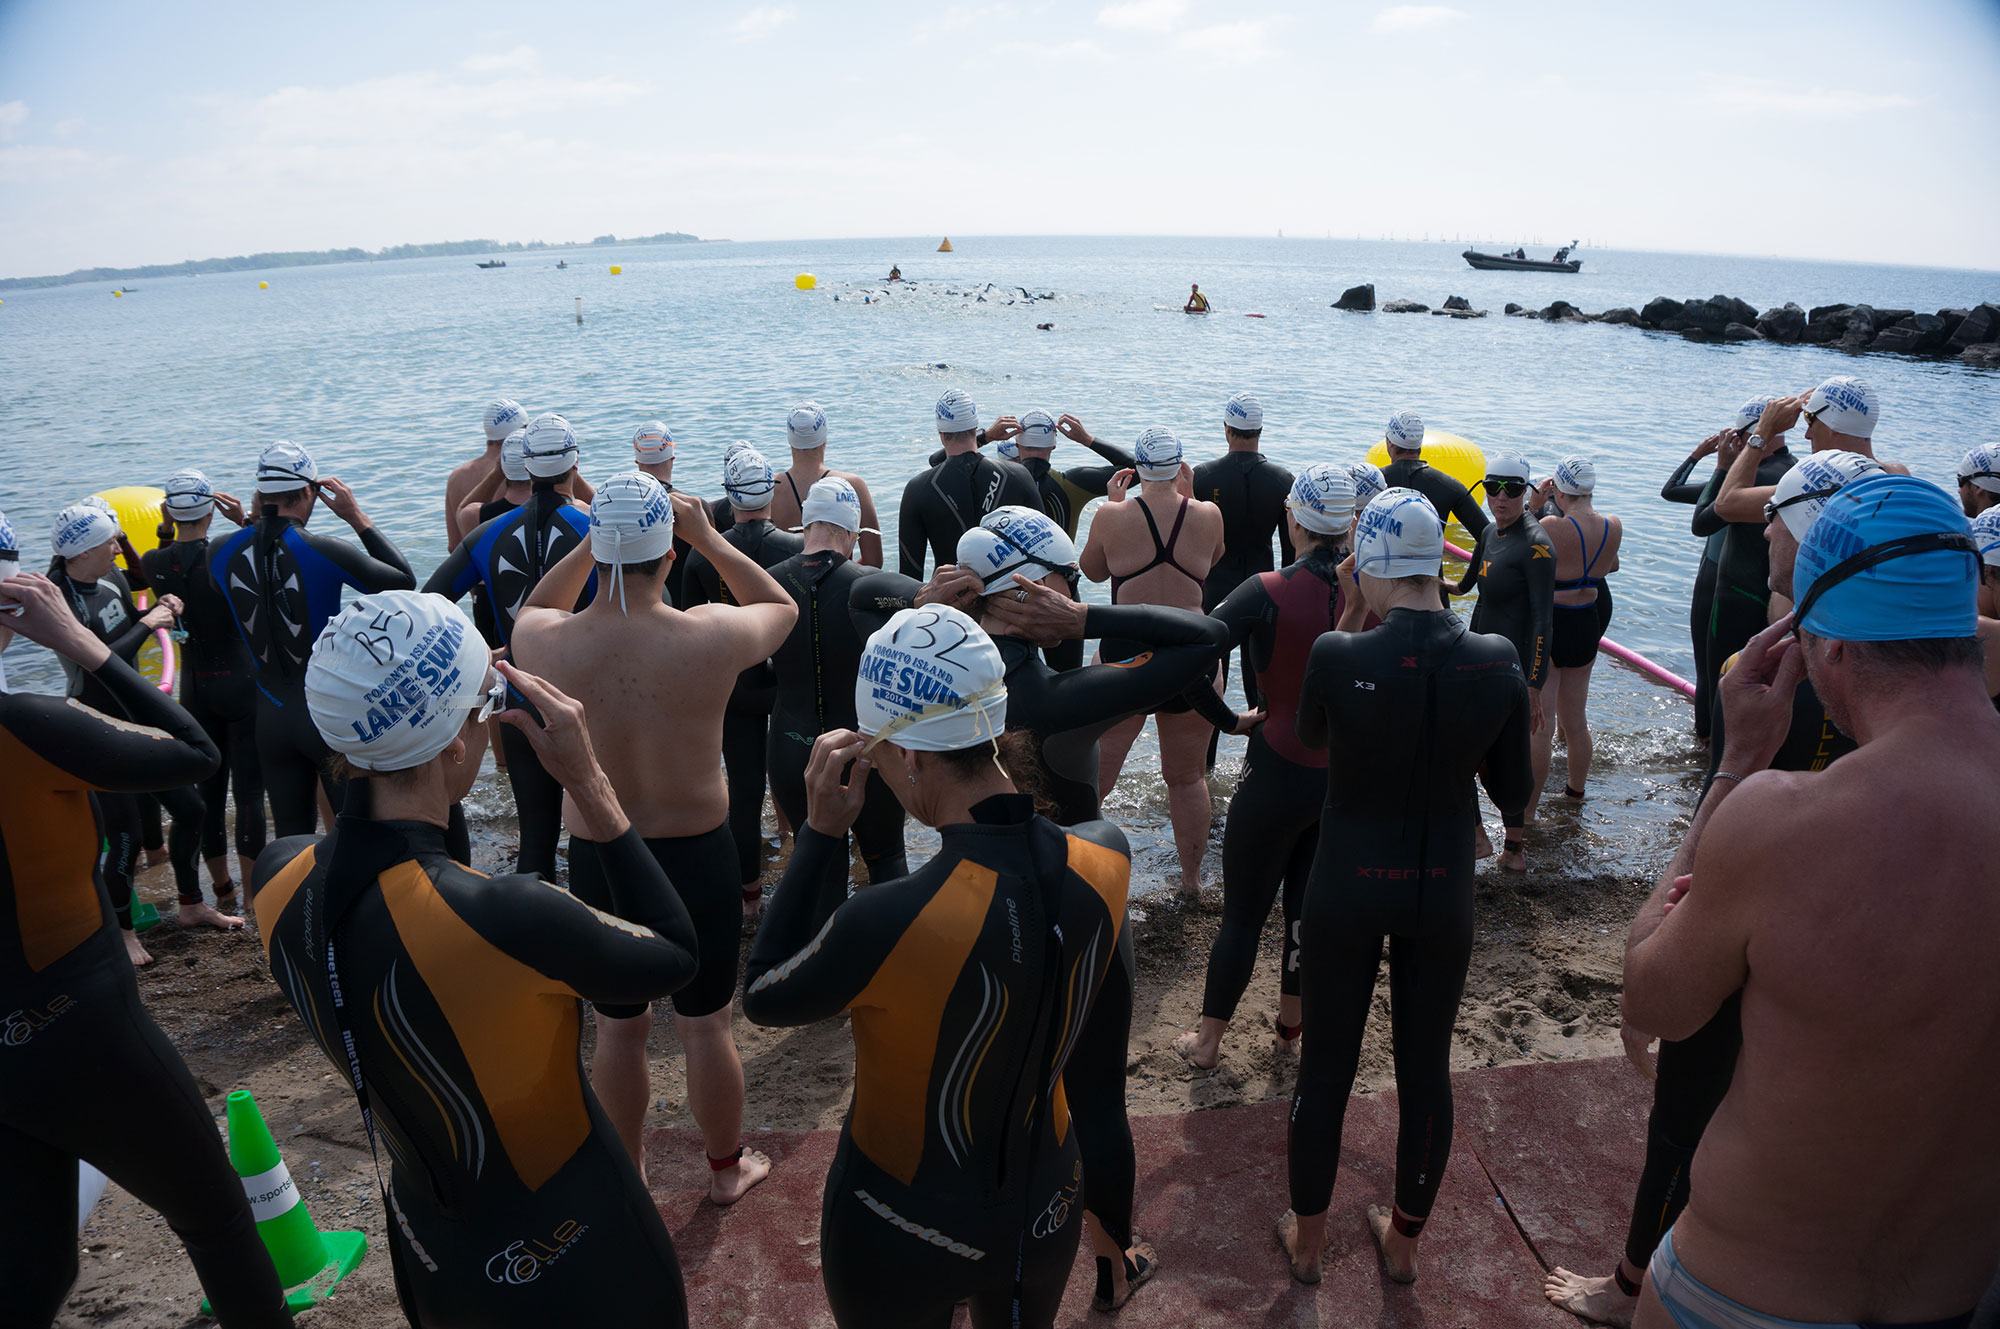 Another wave of swimmers getting ready to take the plunge at last year's Toronto Island Lake Swim. (Photo via Lake Ontario Waterkeeper)